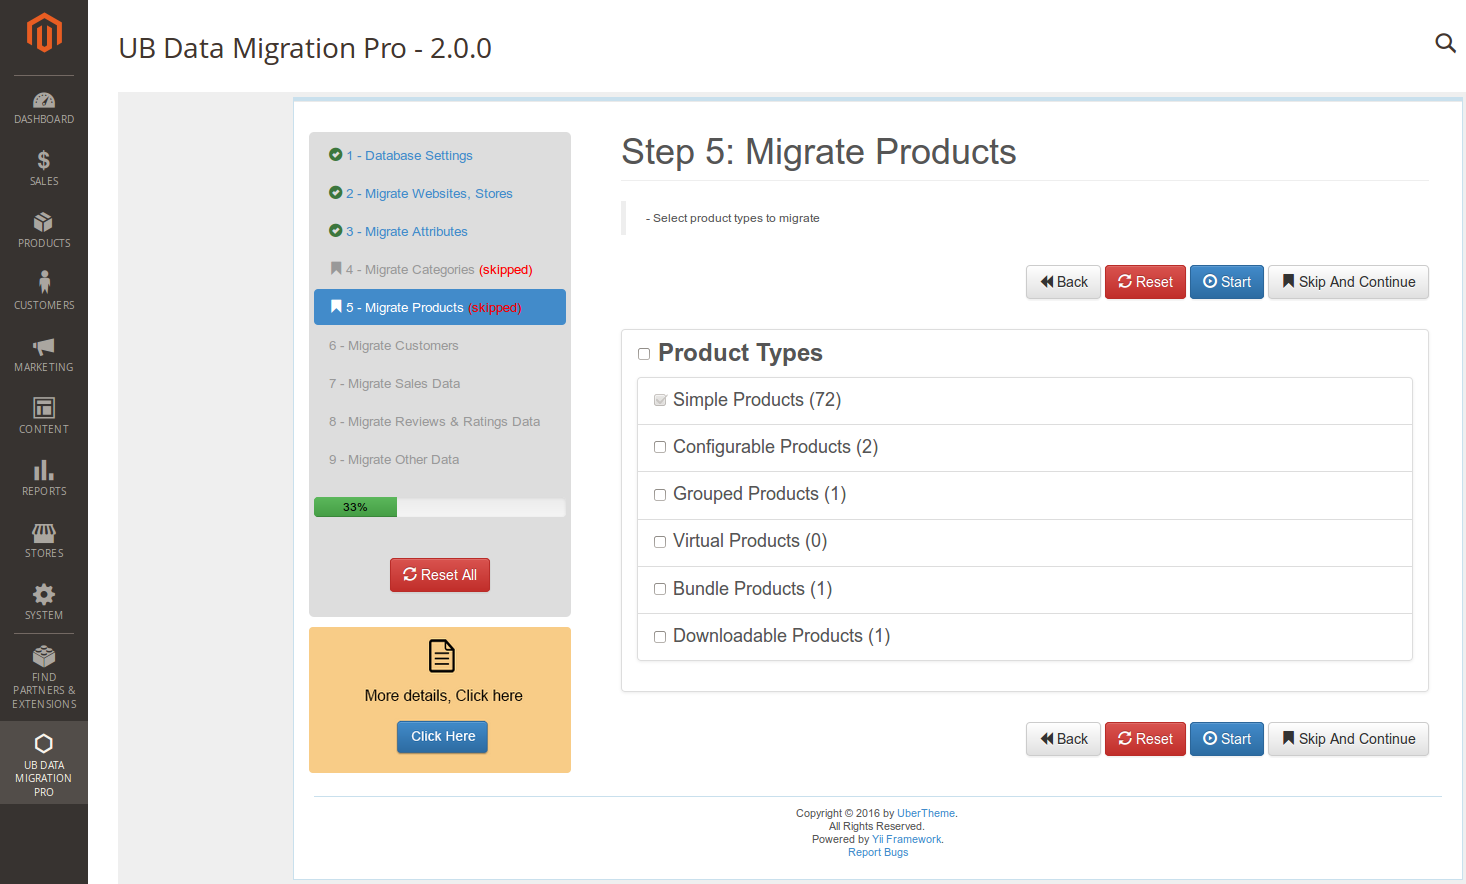 Step 5 - Migrate Products